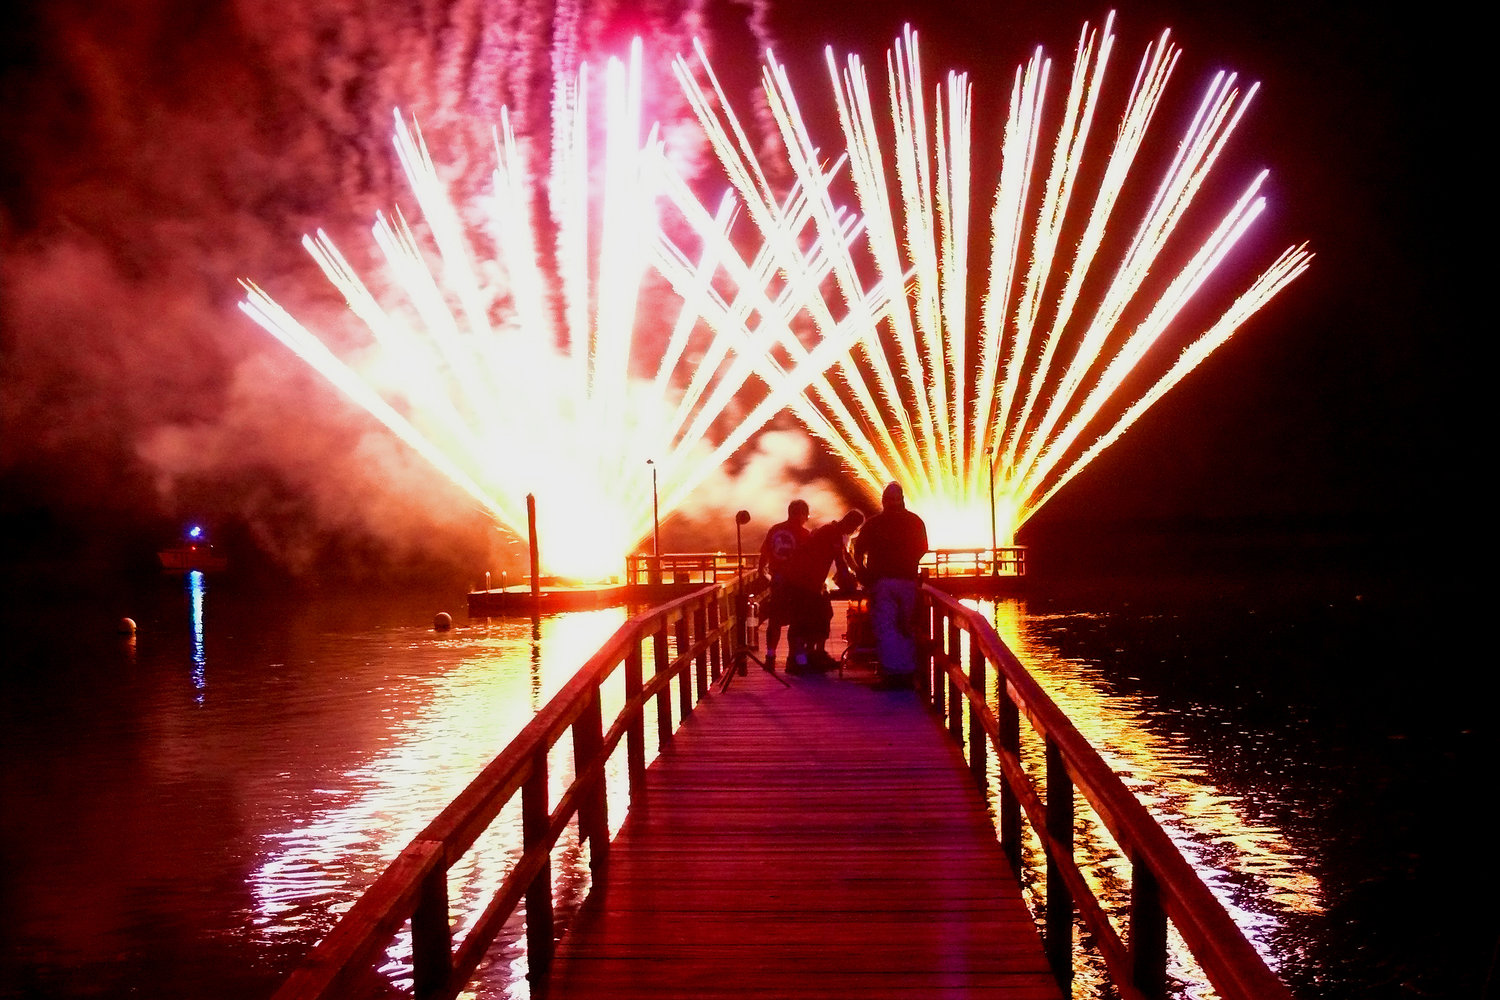 Fireworks lit the night sky to put a dazzling end to the summer fun.